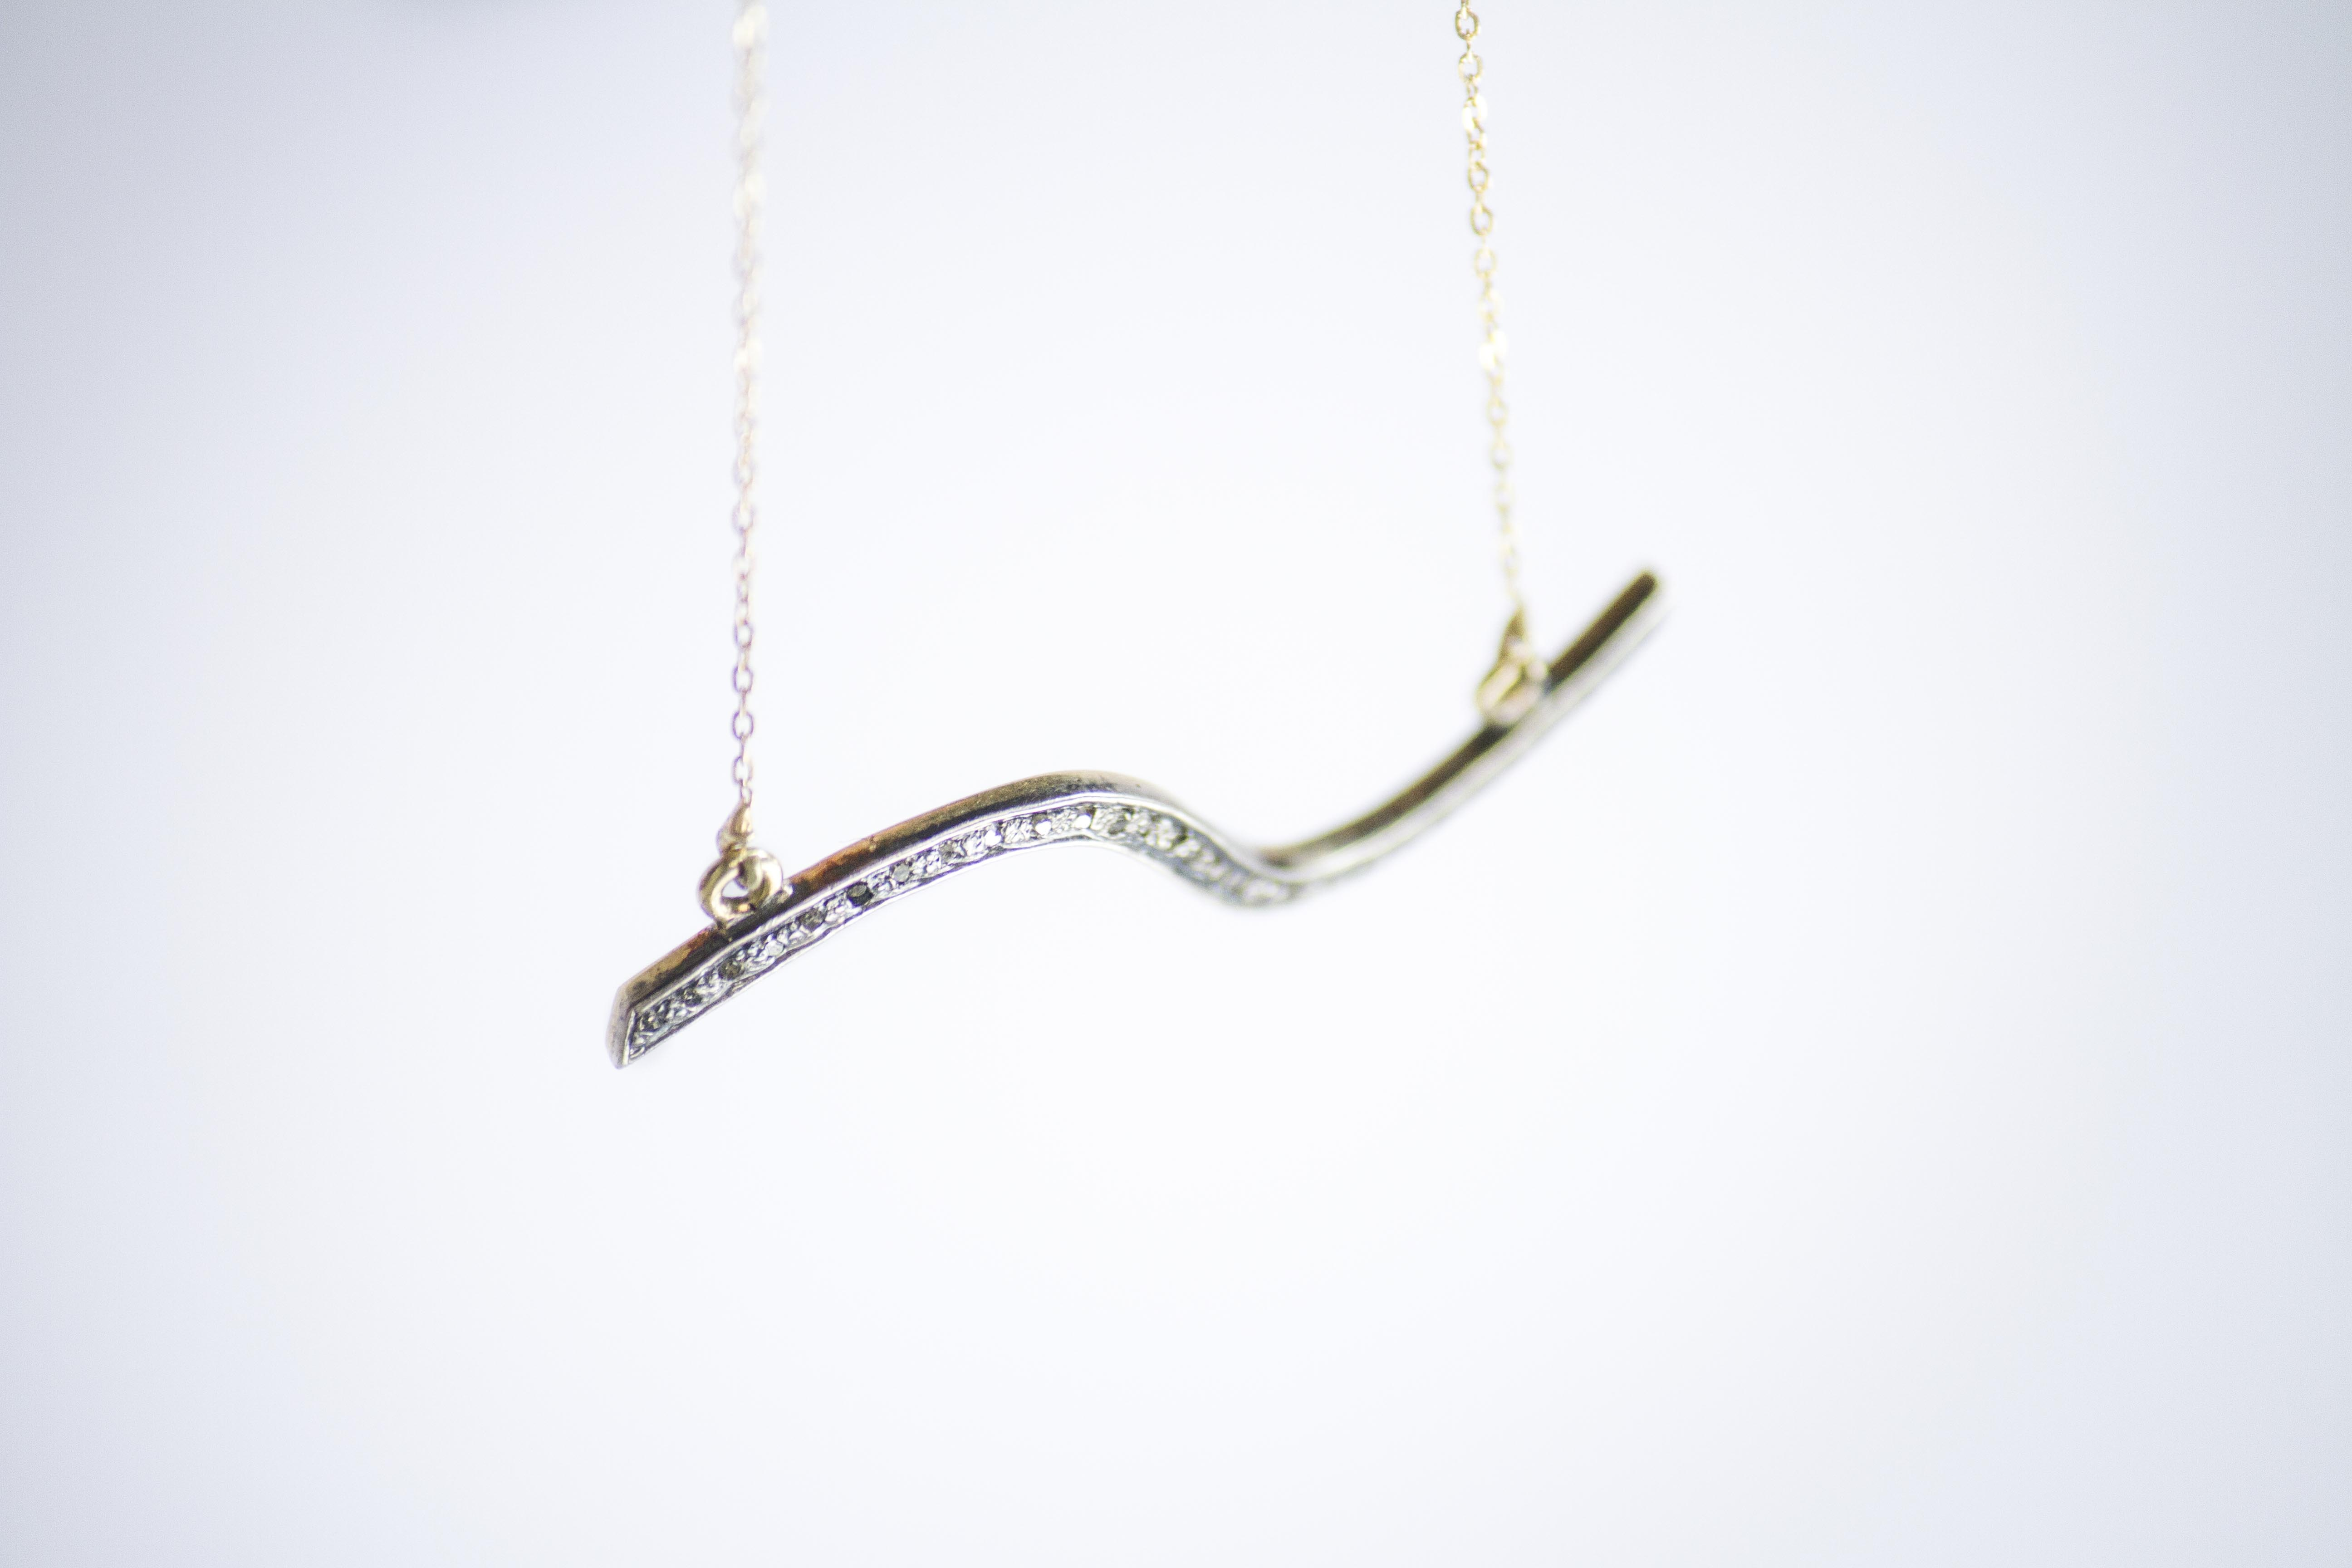 wave necklace Delicate pendant crafted with 14k yellow with diamond pave and a fine chain